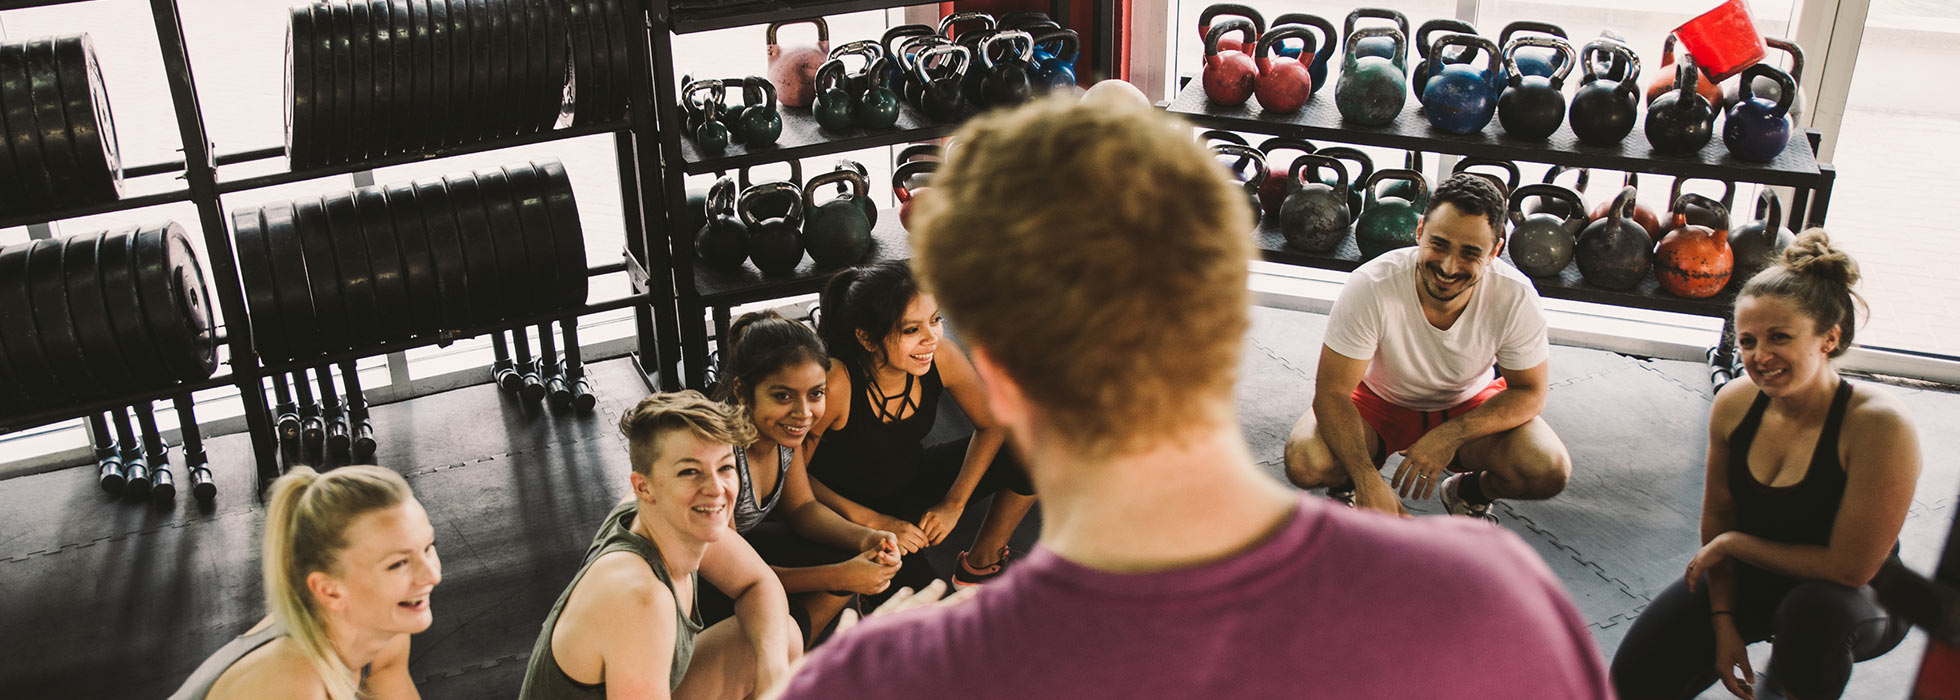 Top 5 Best Gyms to Join Near Bloomfield